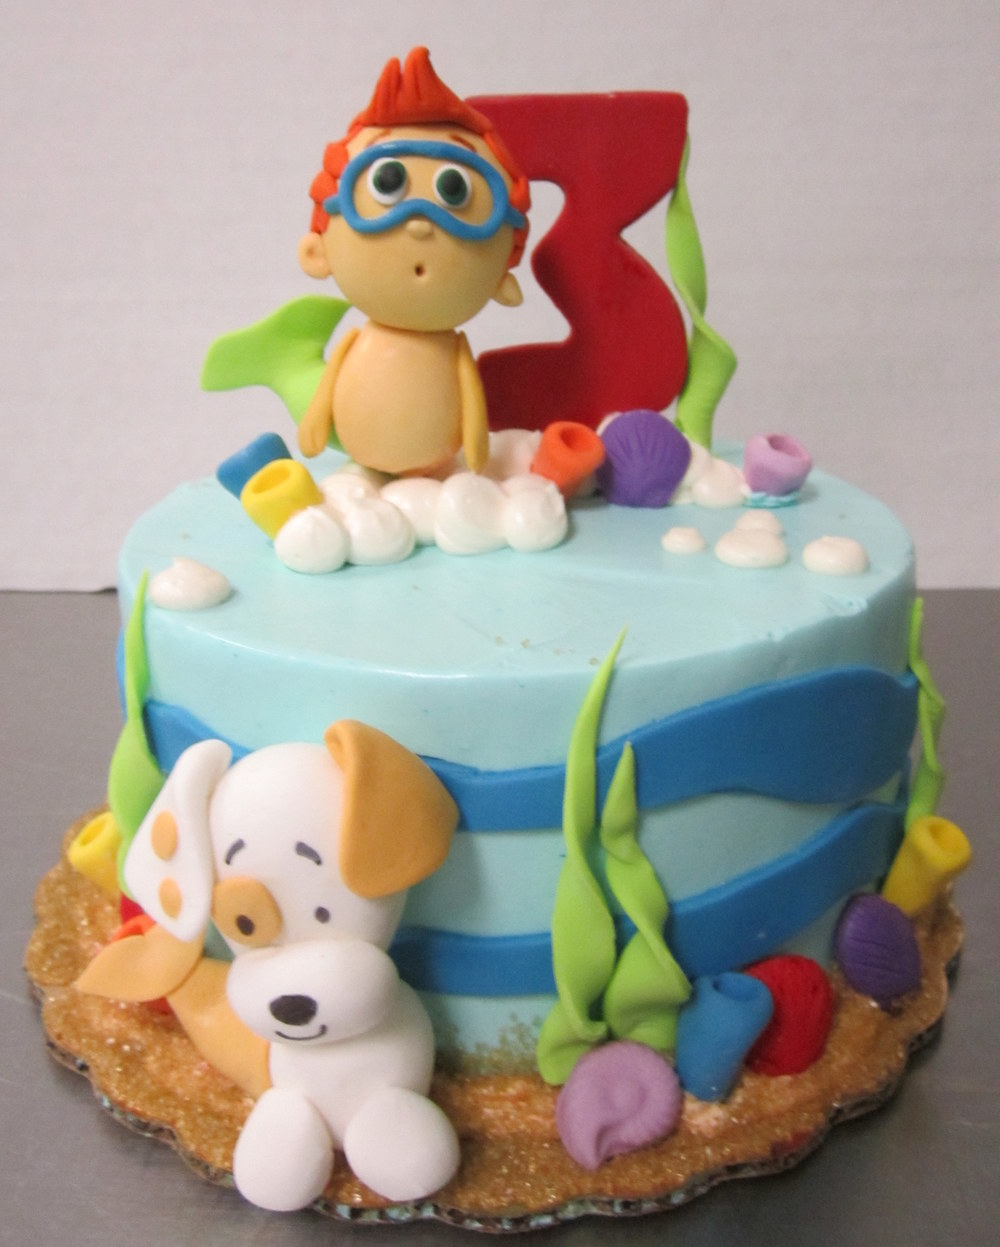 bubble guppies cake.jpg